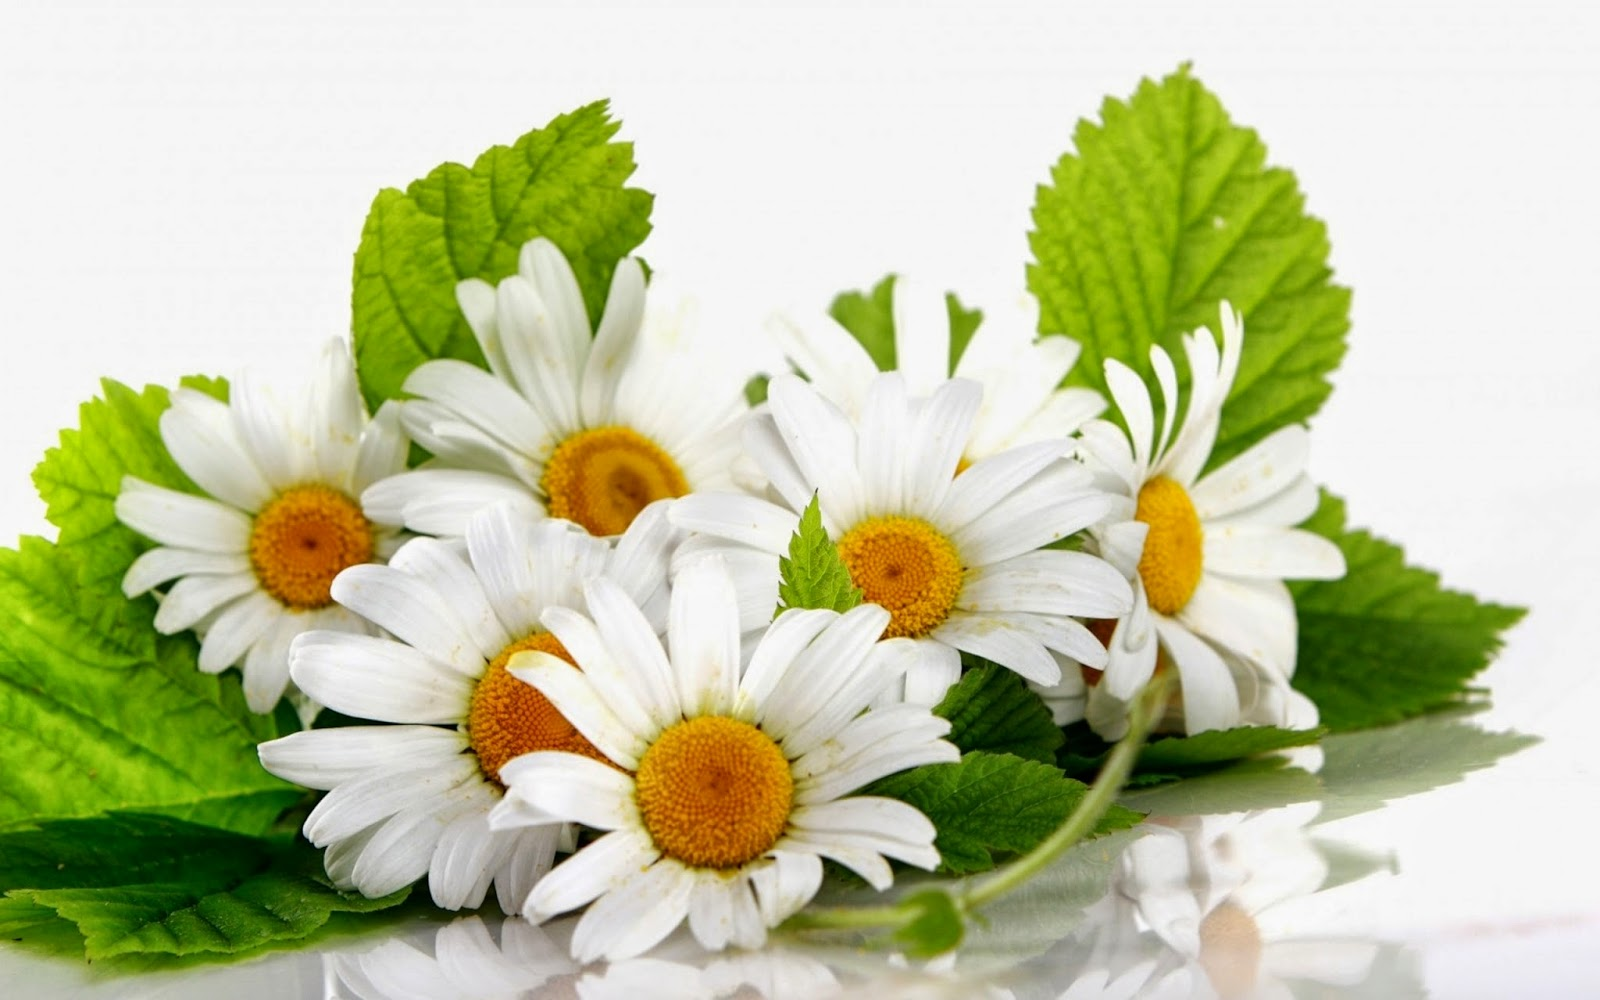 Daisy-flower-image-with-plain-white-background.jpg